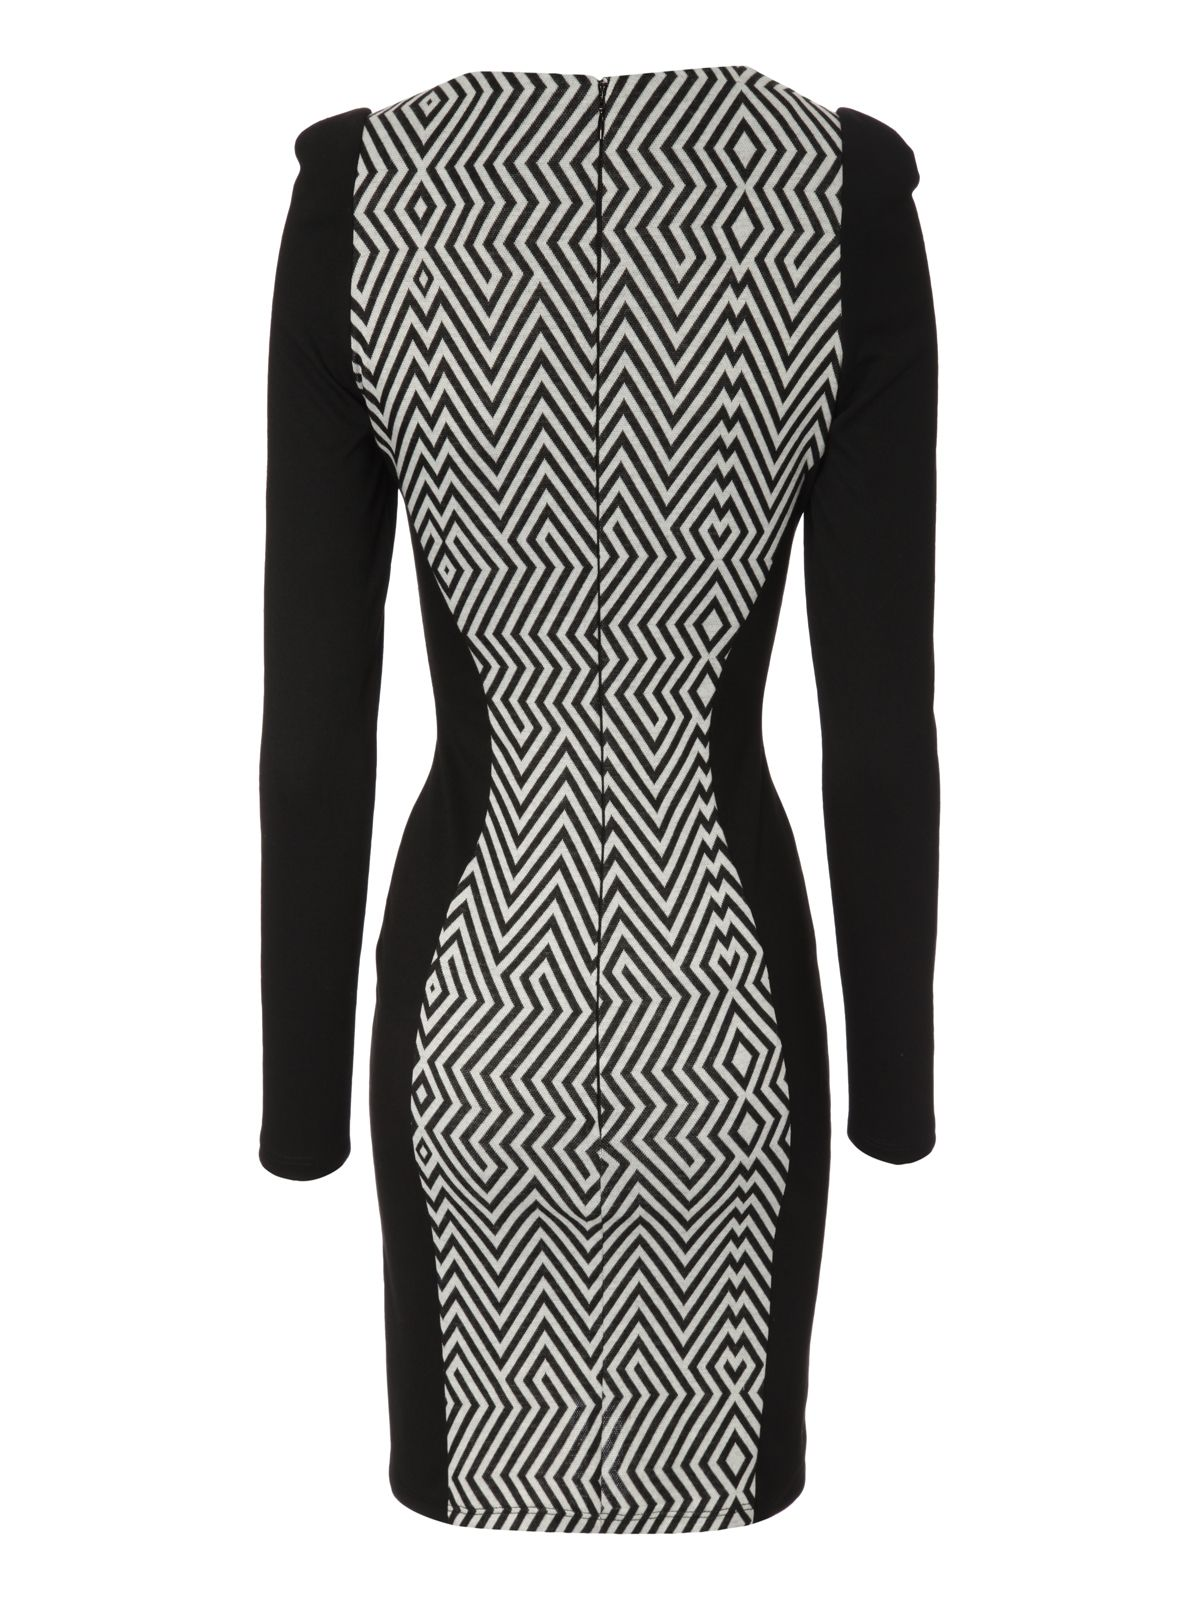 Zip hem graphic dress